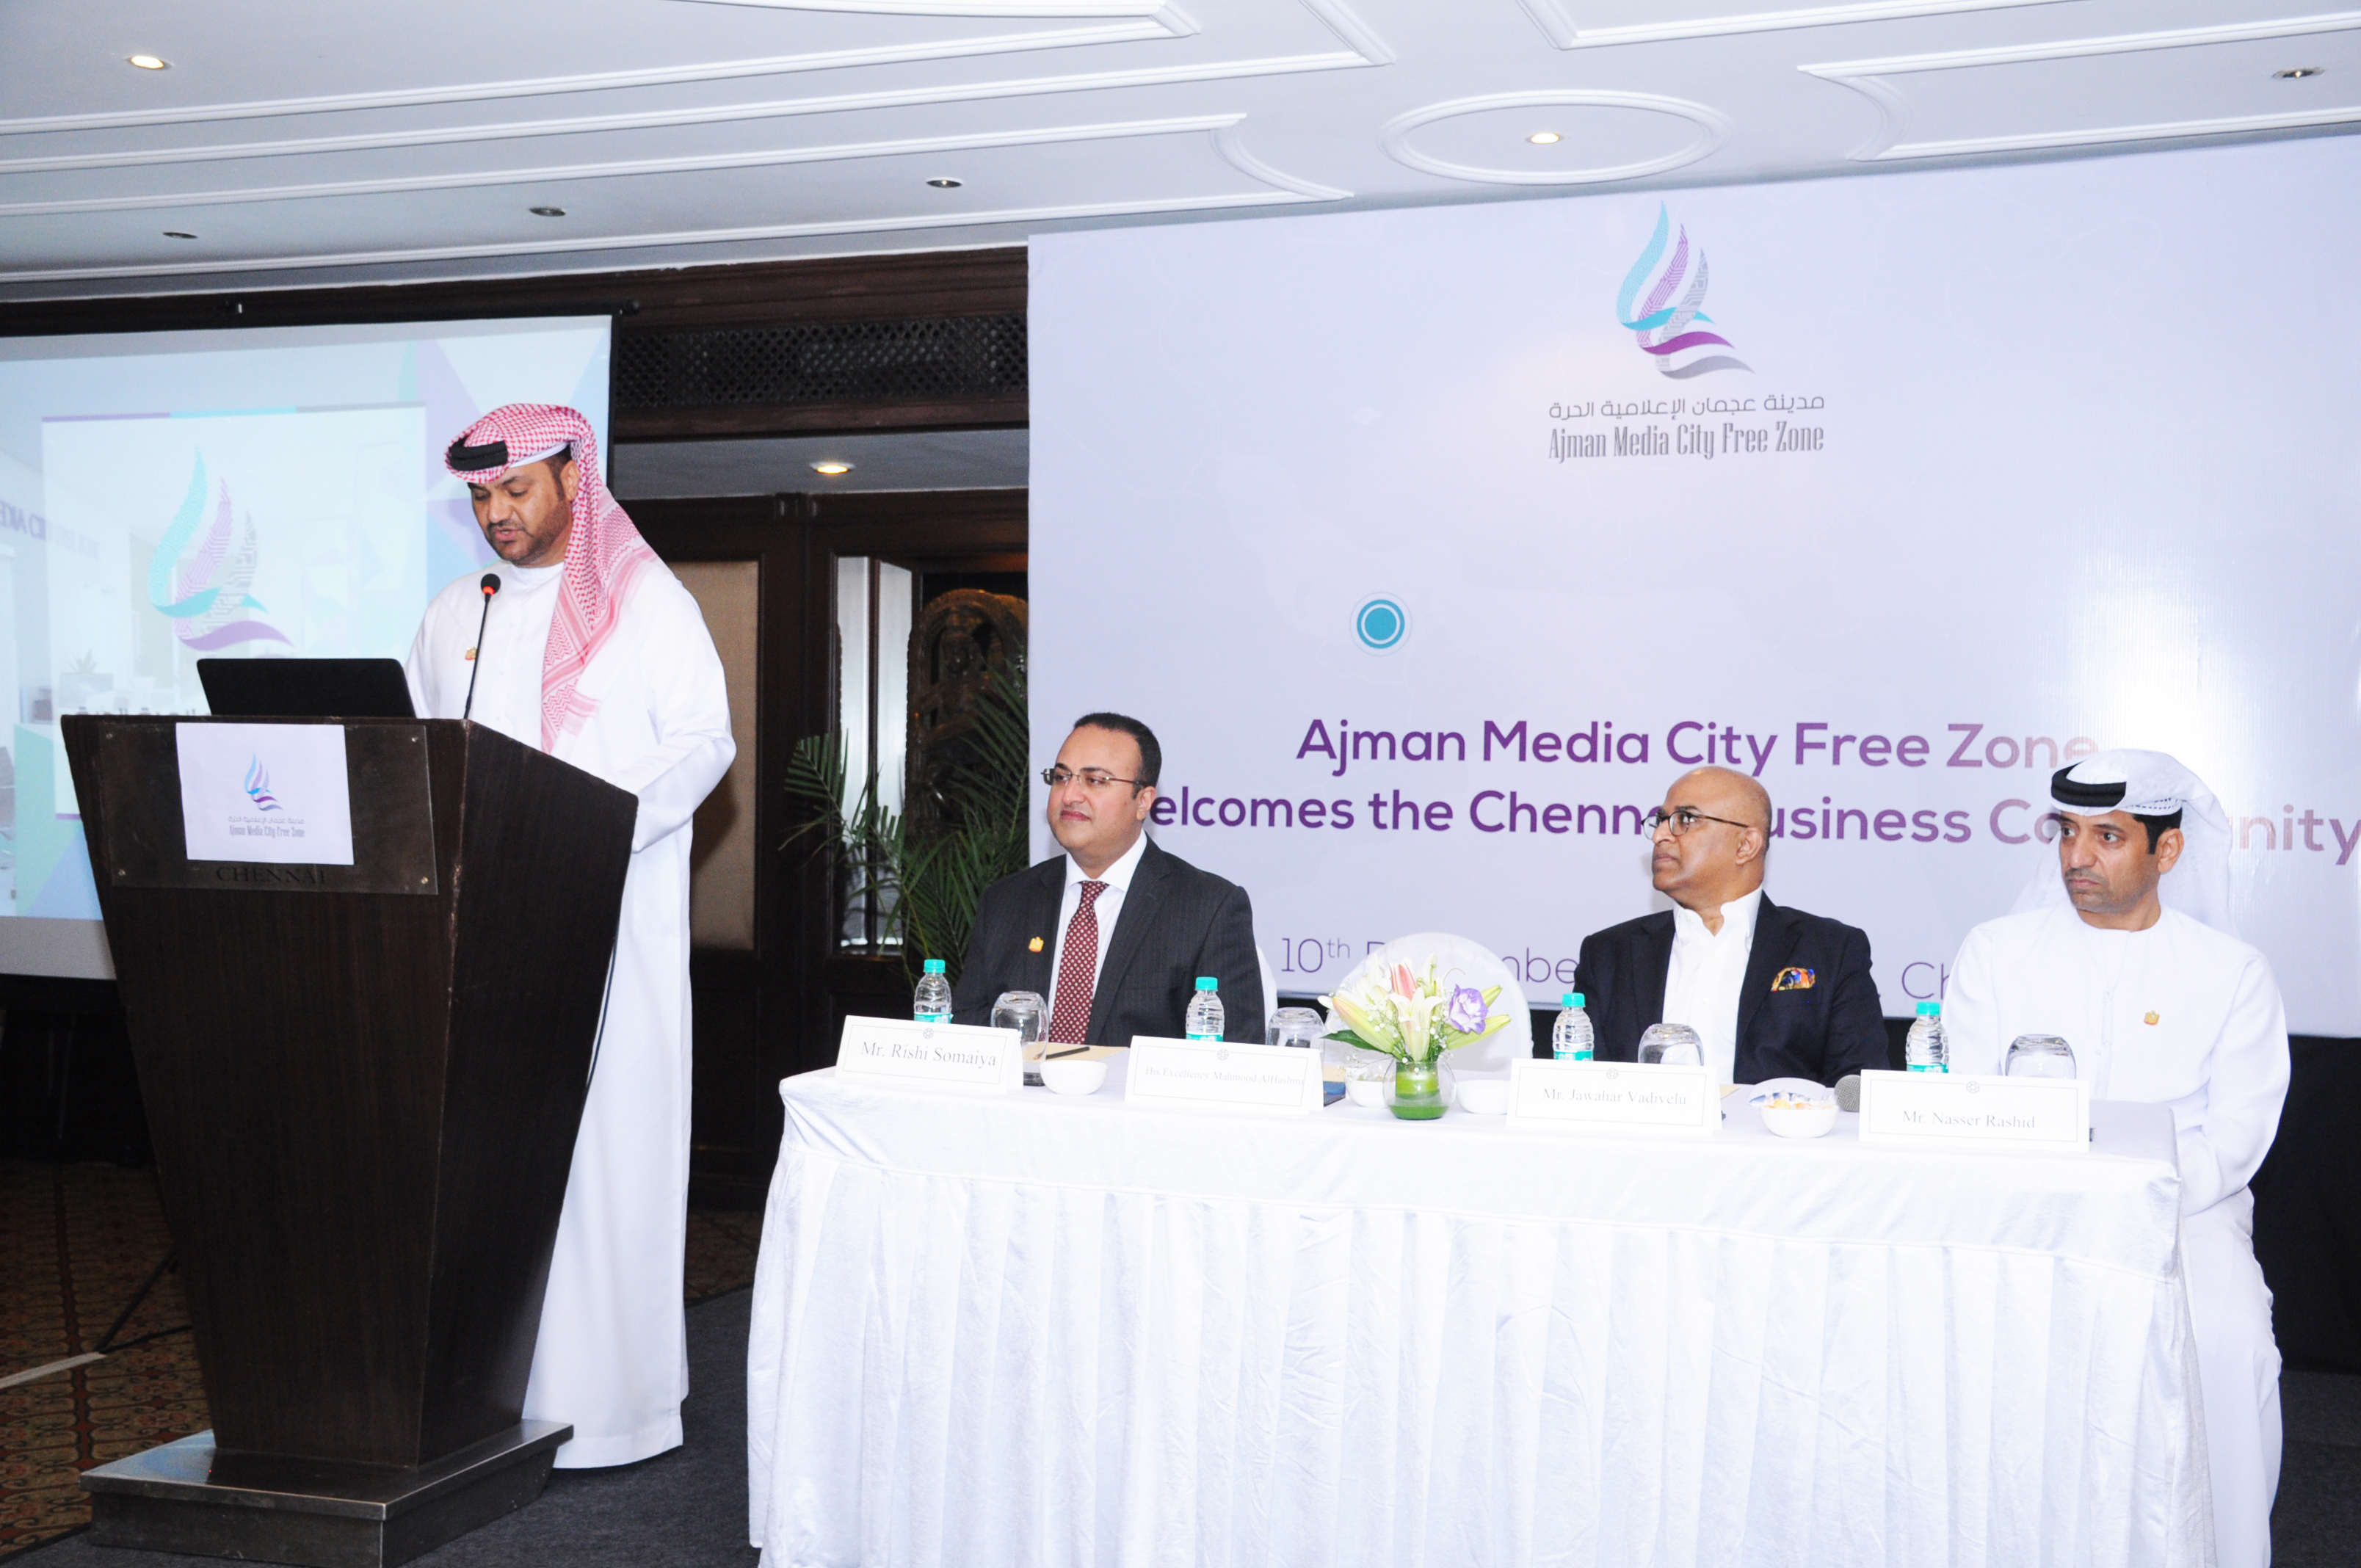 ajman media city free zone concludes india road show 1.jpg